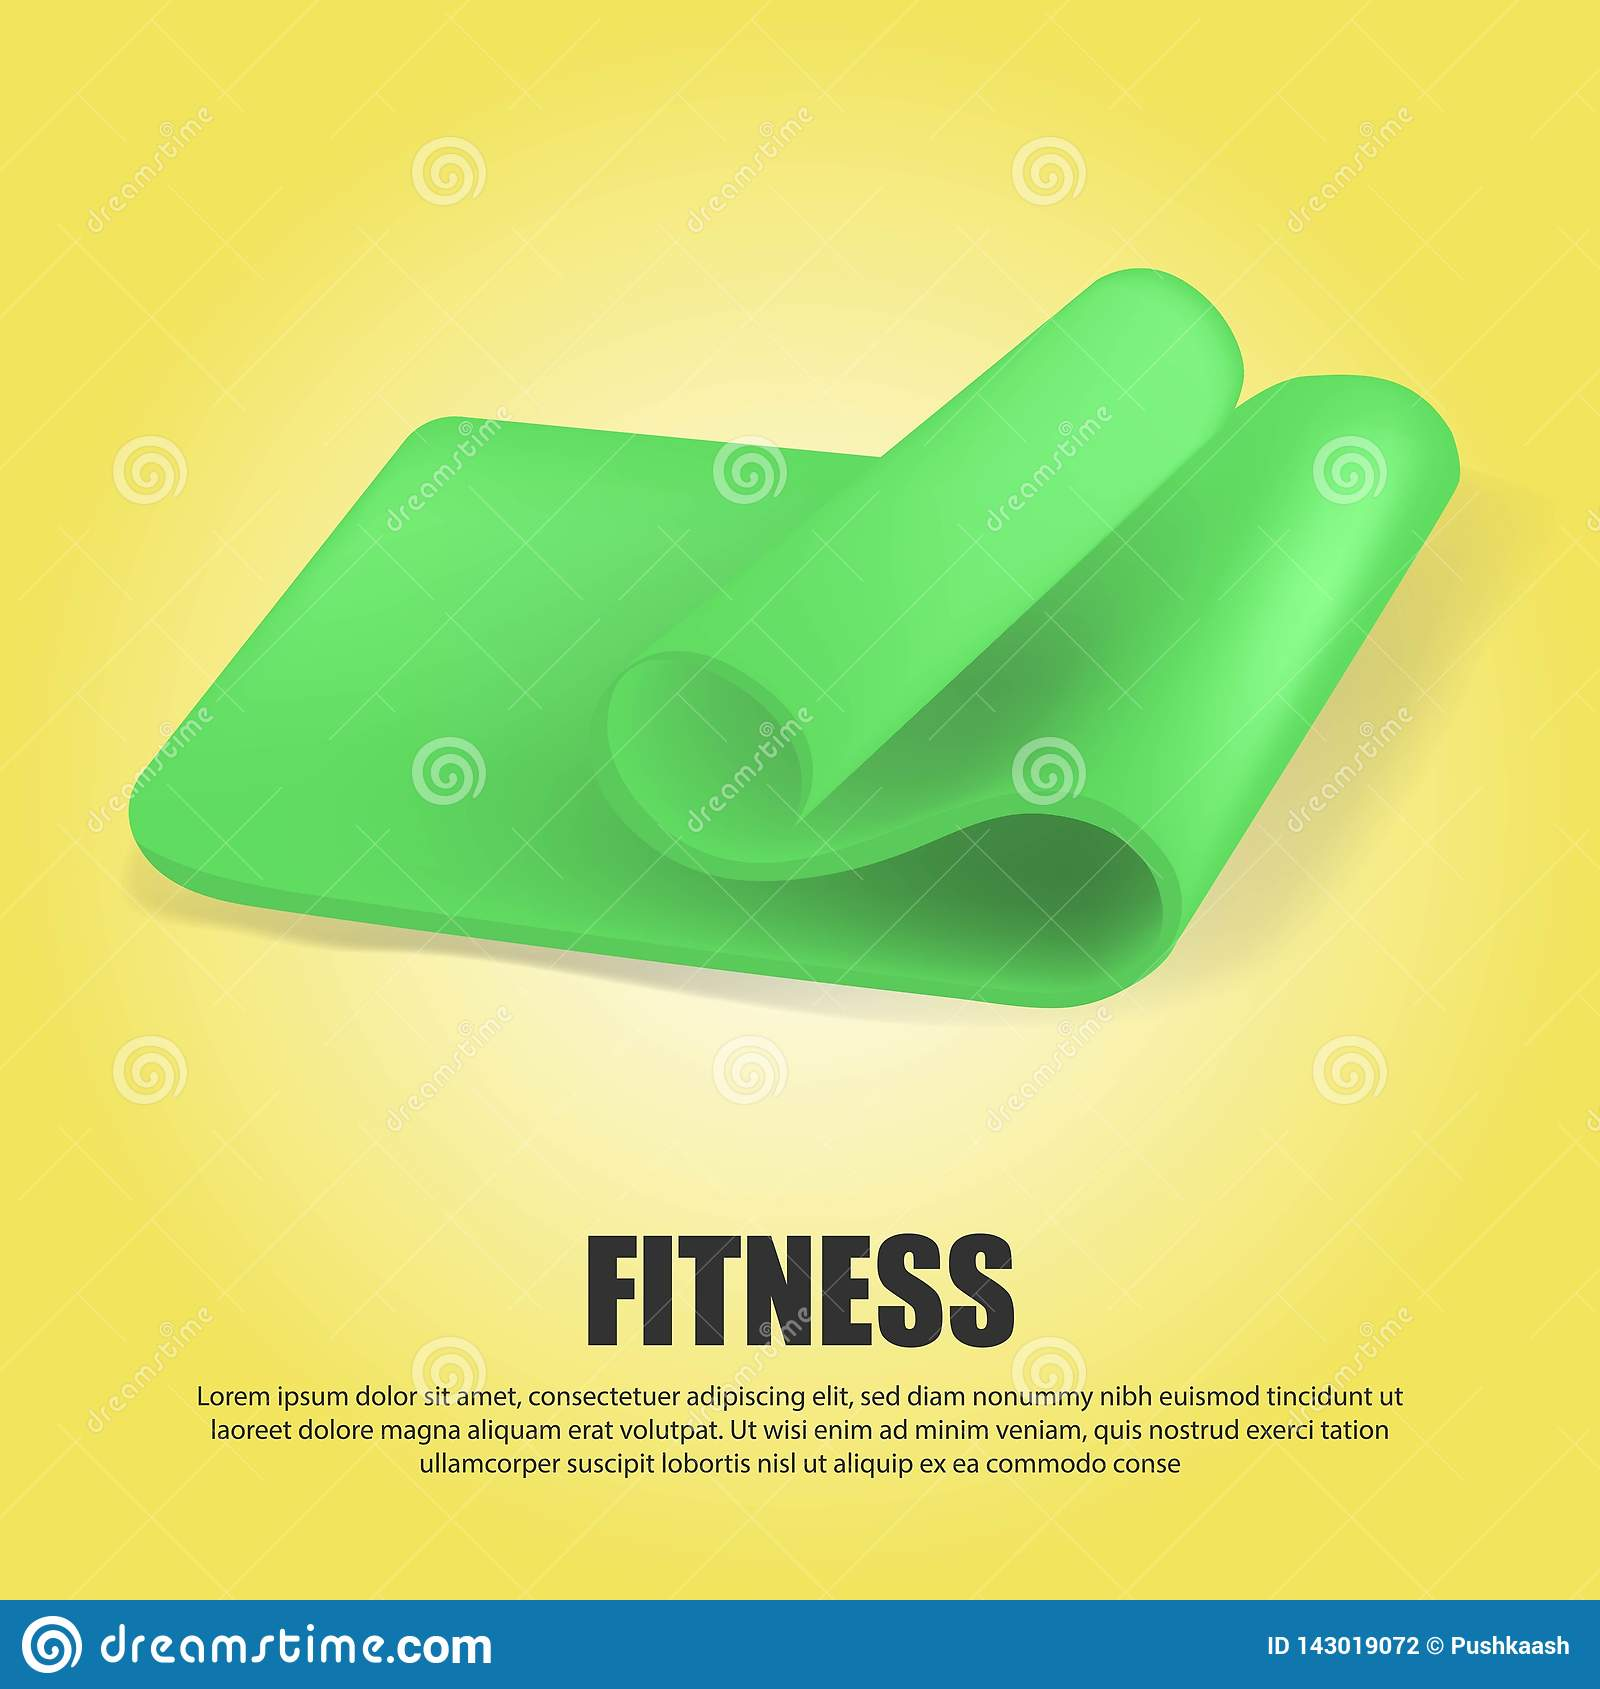 Creative Illustration Of Half Green Rolled Yoga Mat Isolated On Transparent Background Art Design Fitness And Health Stock Photo Image Of Roller Activity 143019072